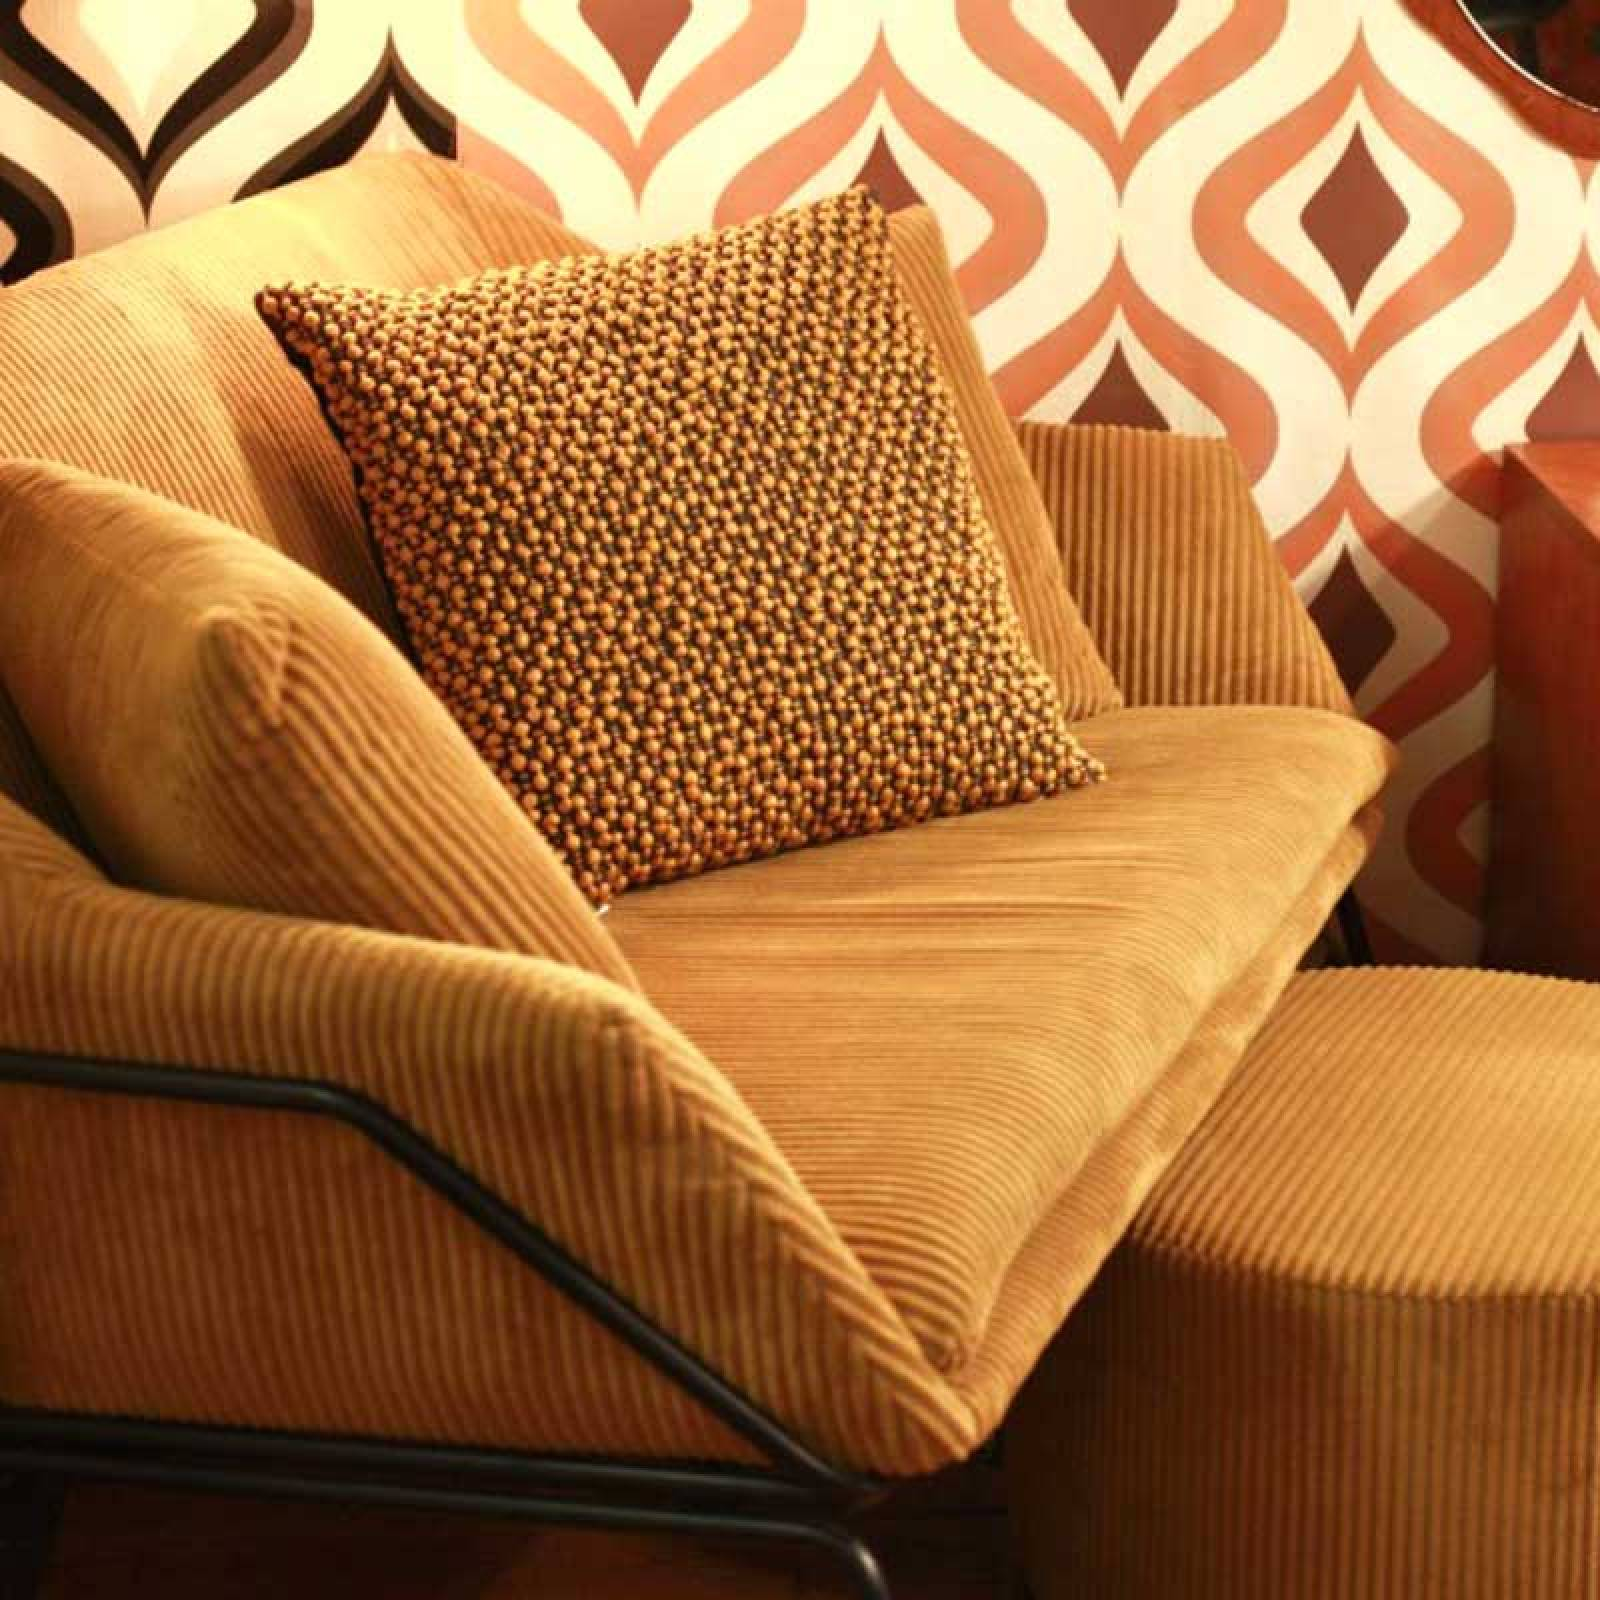 Corduroy Sofa - Caramel Brown With Black Frame thumbnails